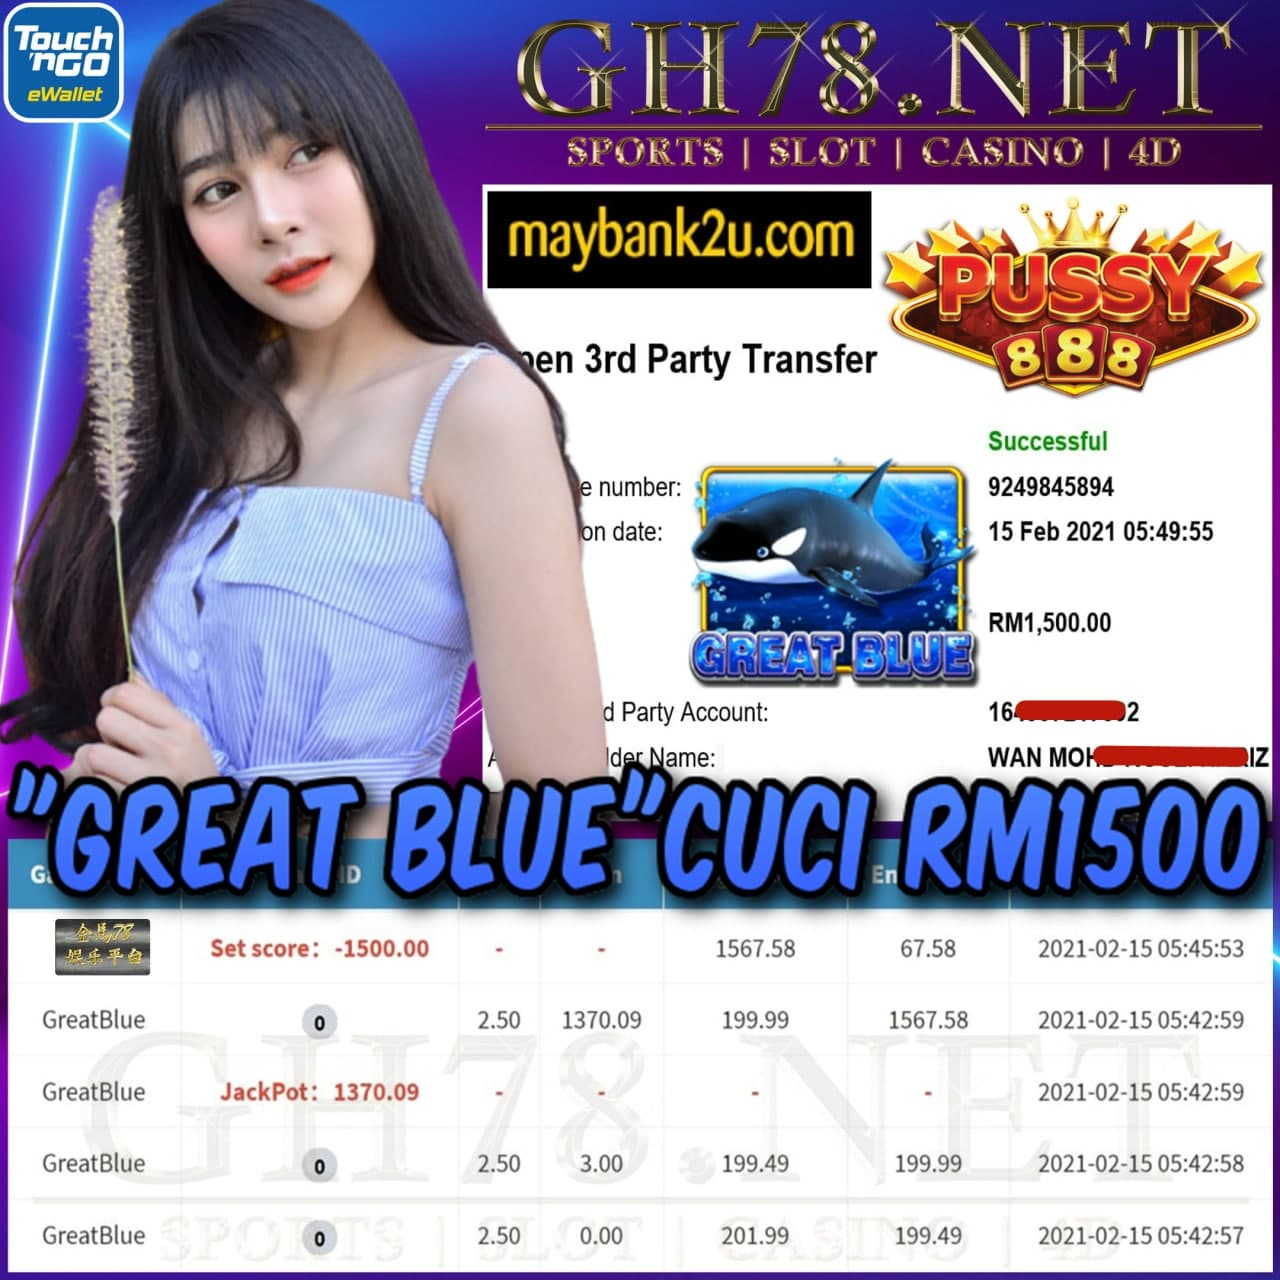 PUSSY888 GREAT BLUE GAME CUCI RM1500